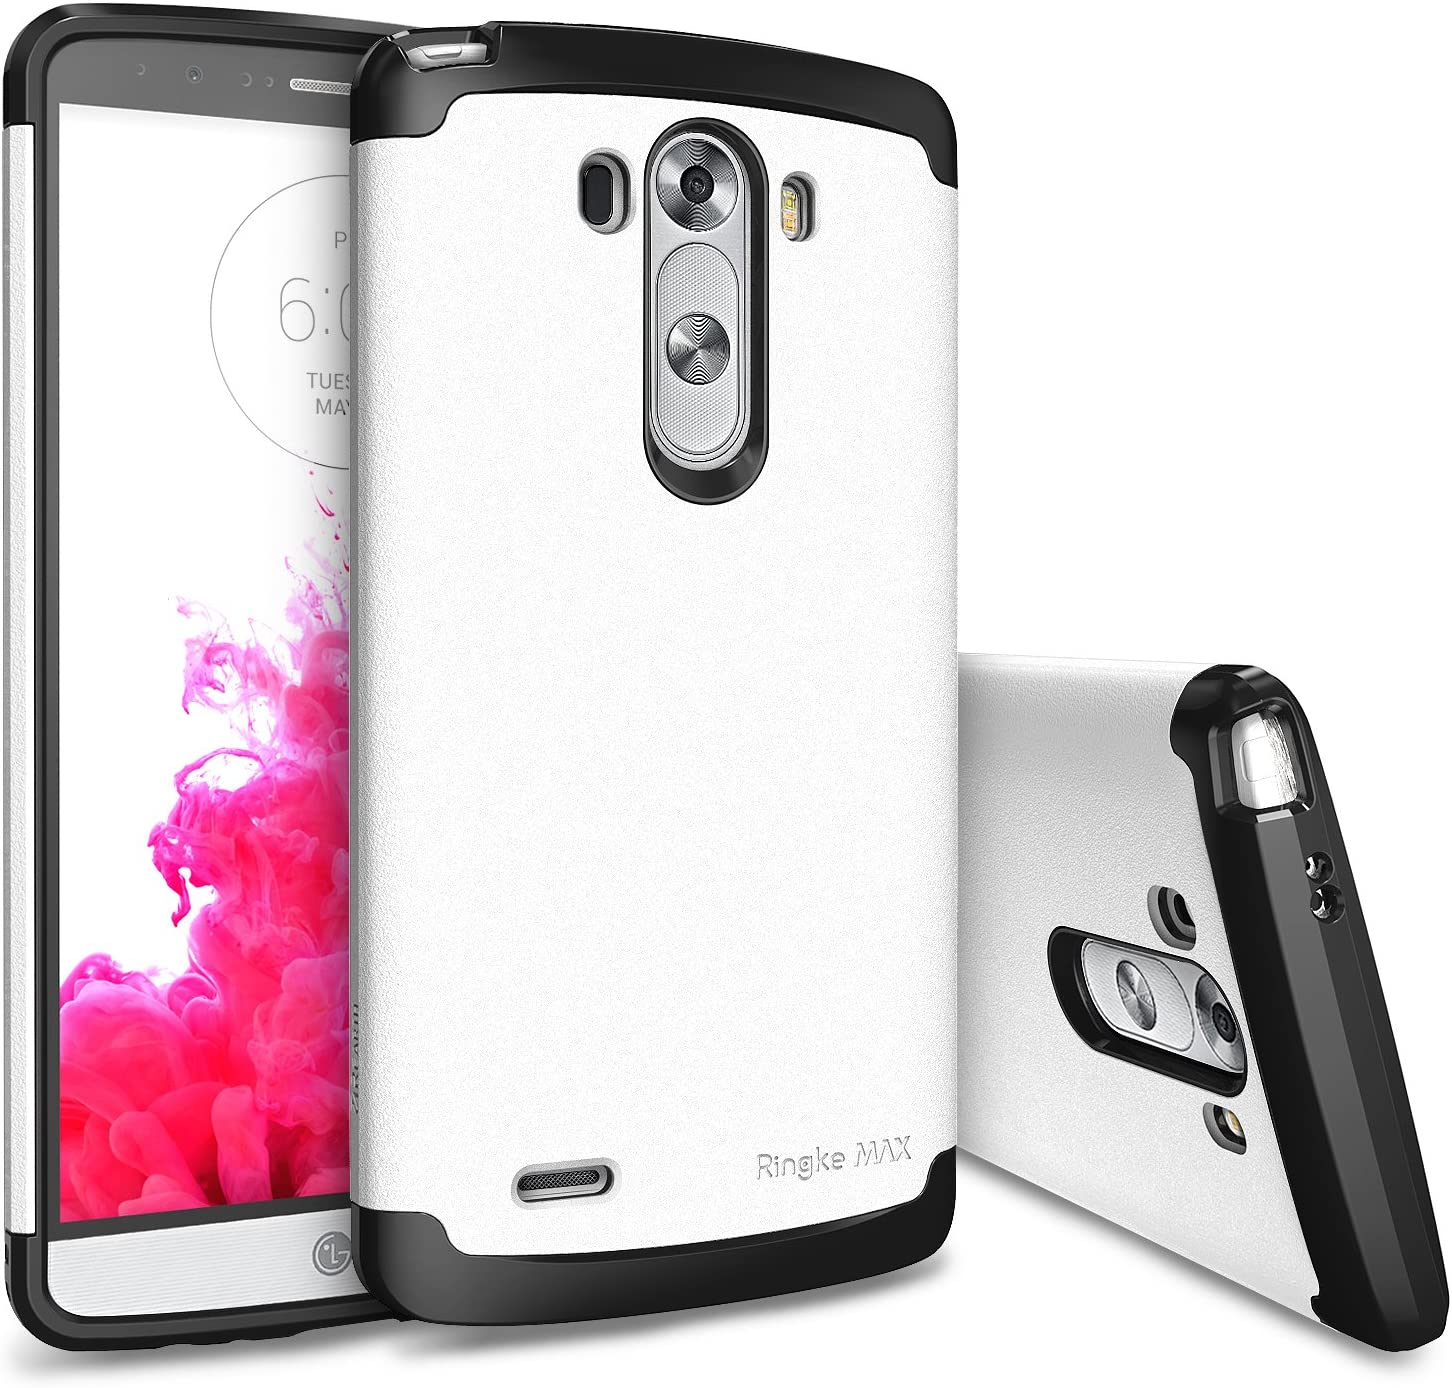 LG G3 Funda - Ringke MAX [WHITE Blanco] Double Layer Heavy Duty Protection Armor Funda [FREE HD Film / Slim Max Protection] for LG G3- Eco Package